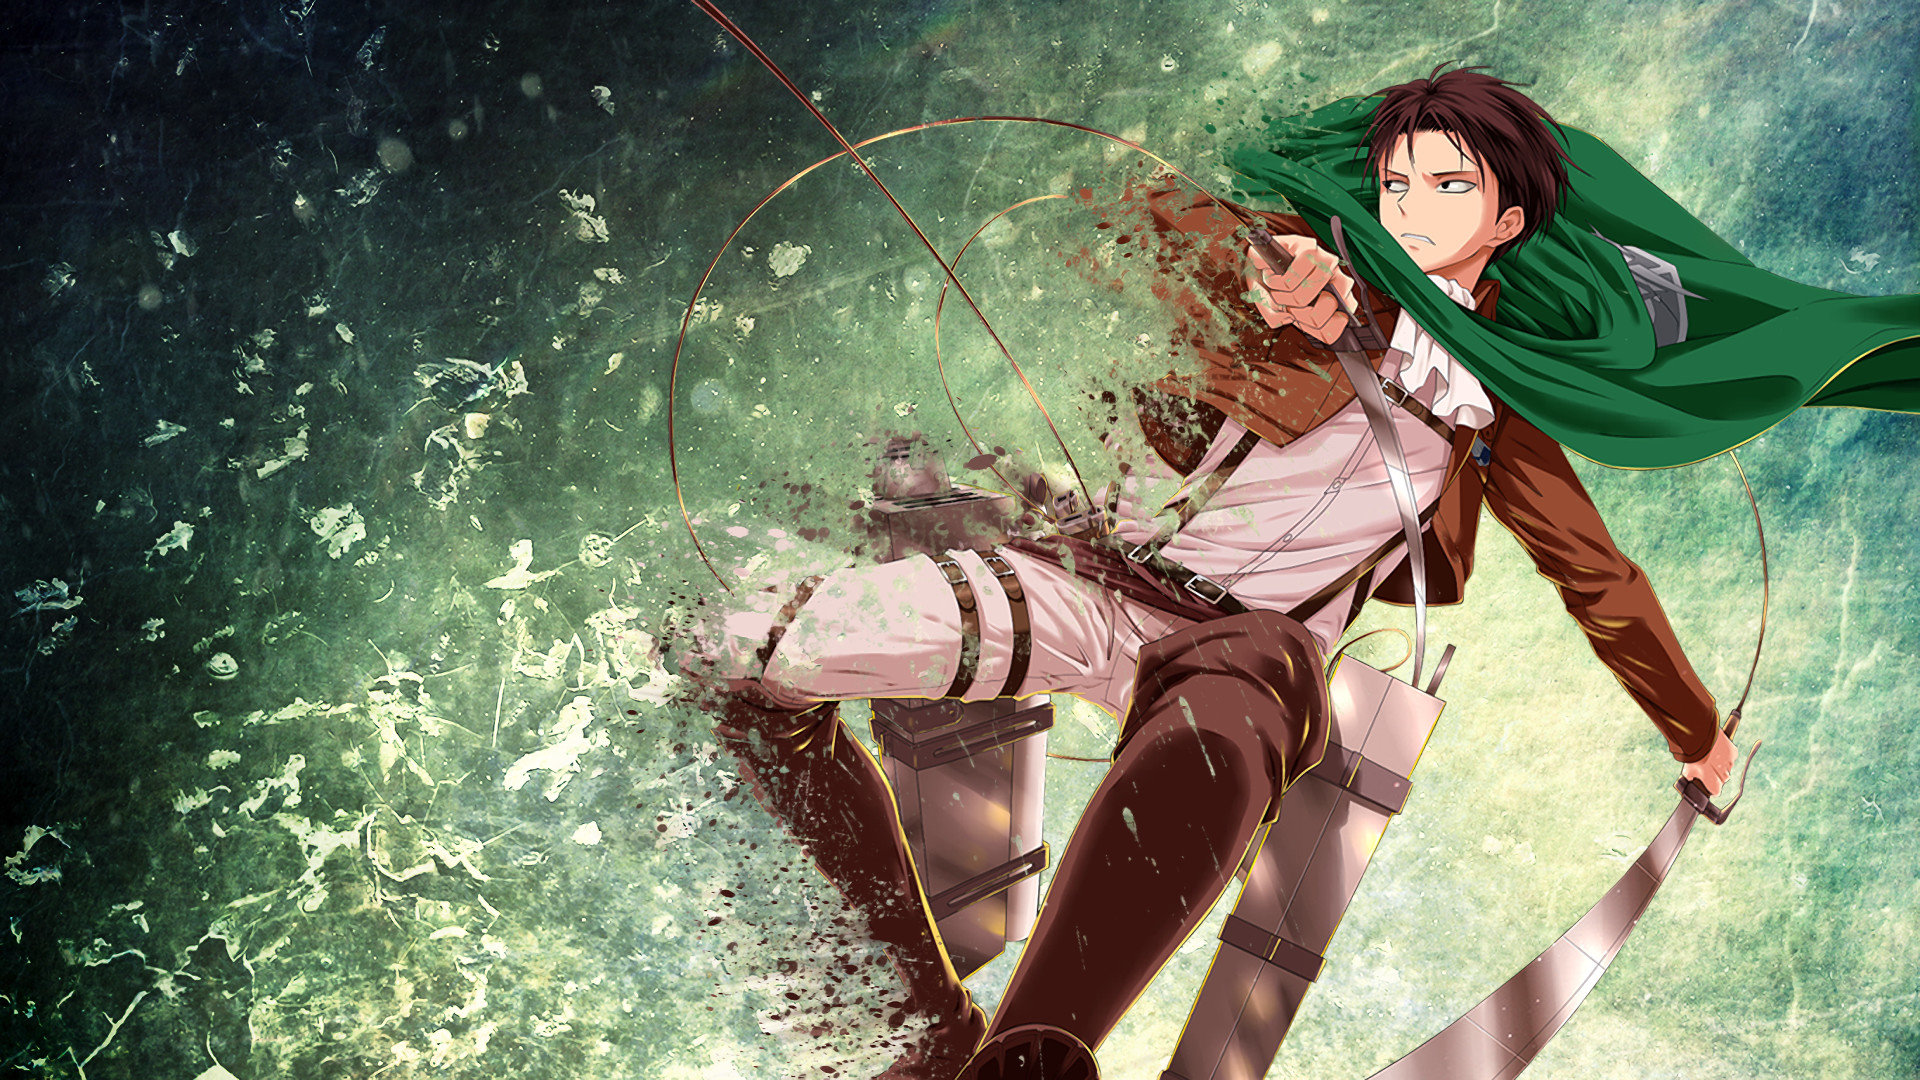 Download Full Hd Levi Ackerman Pc Background Id 206514 For Free